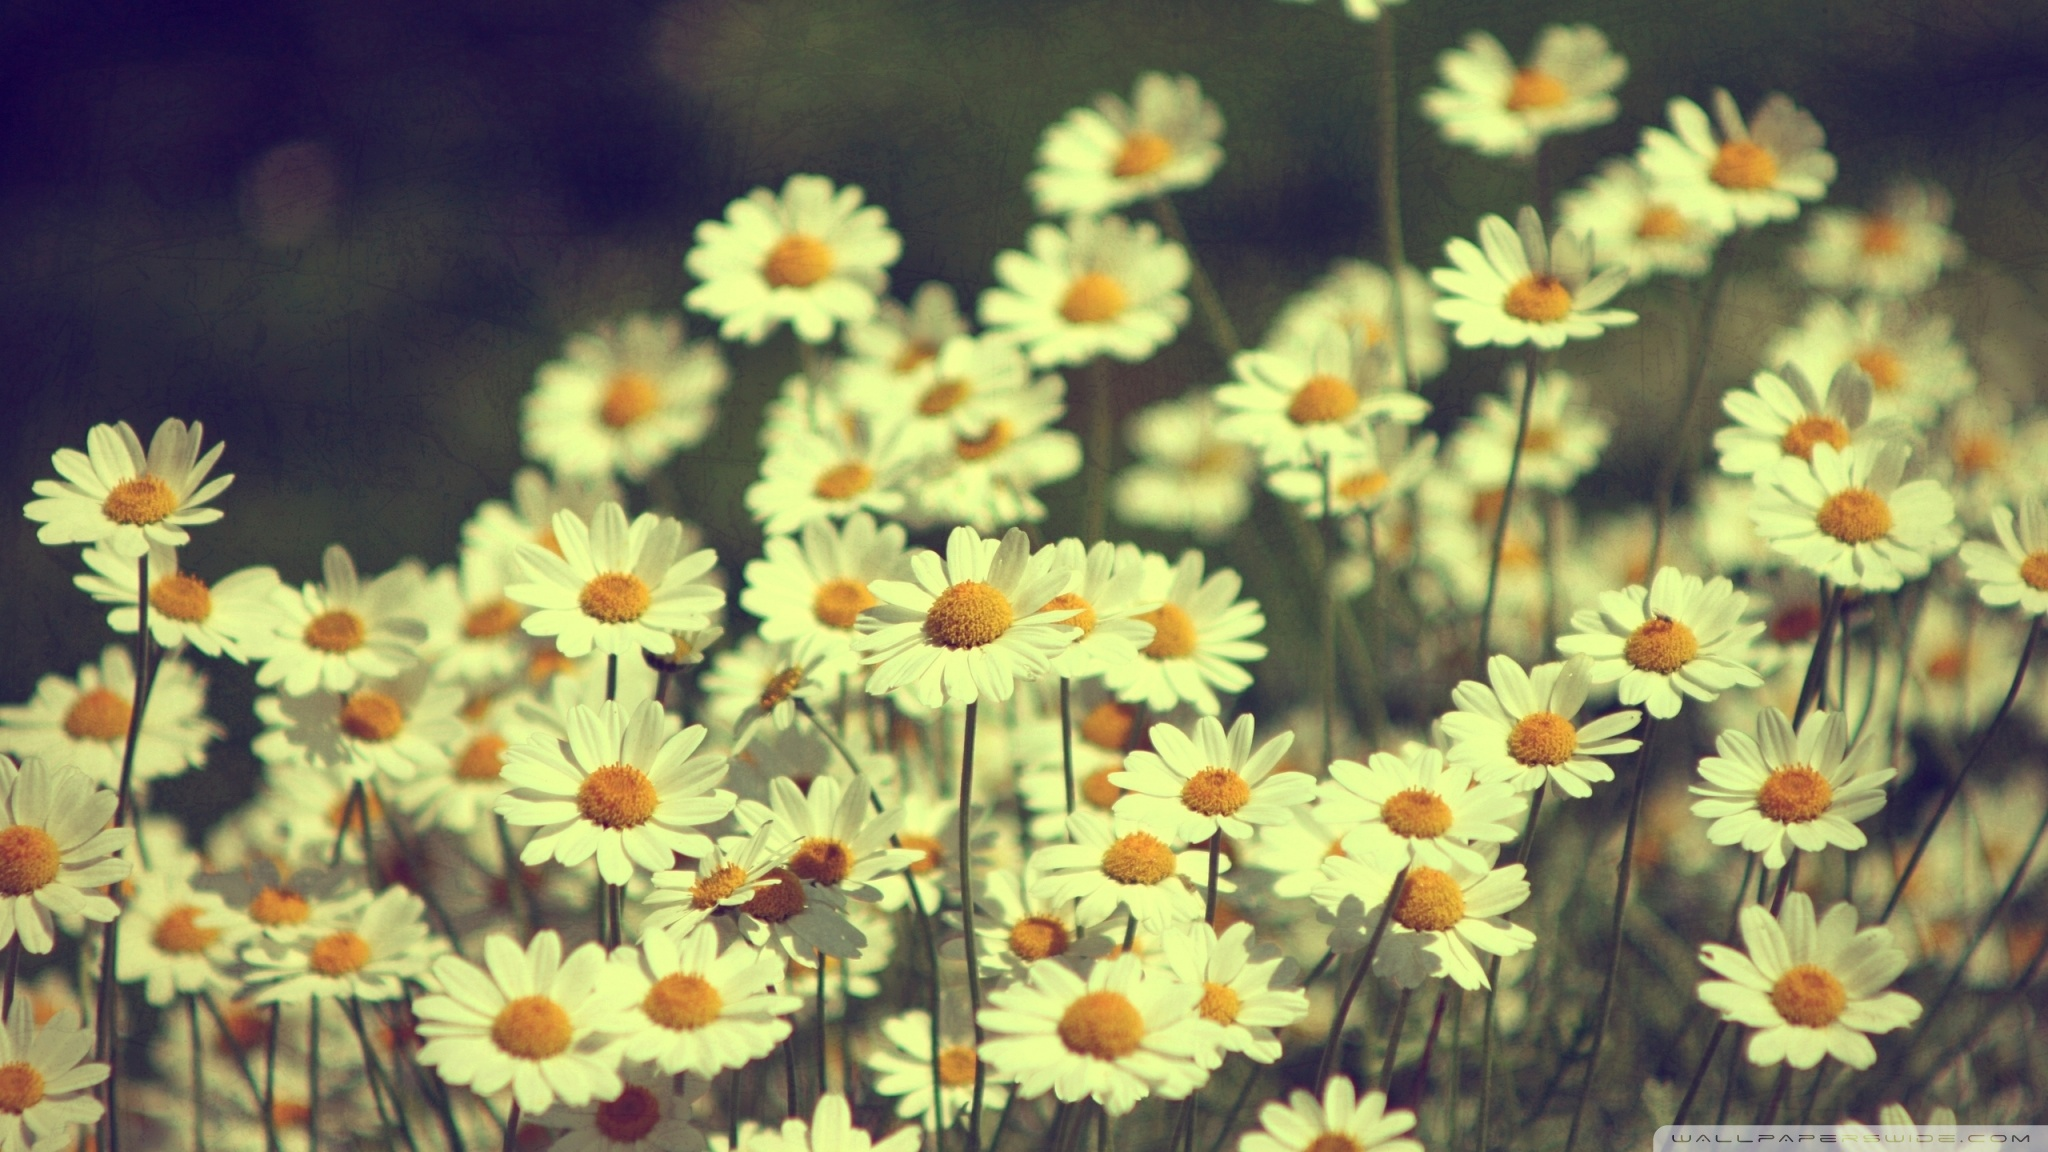 want daisies in my hair green tea in my hand and love in my heart 2048x1152